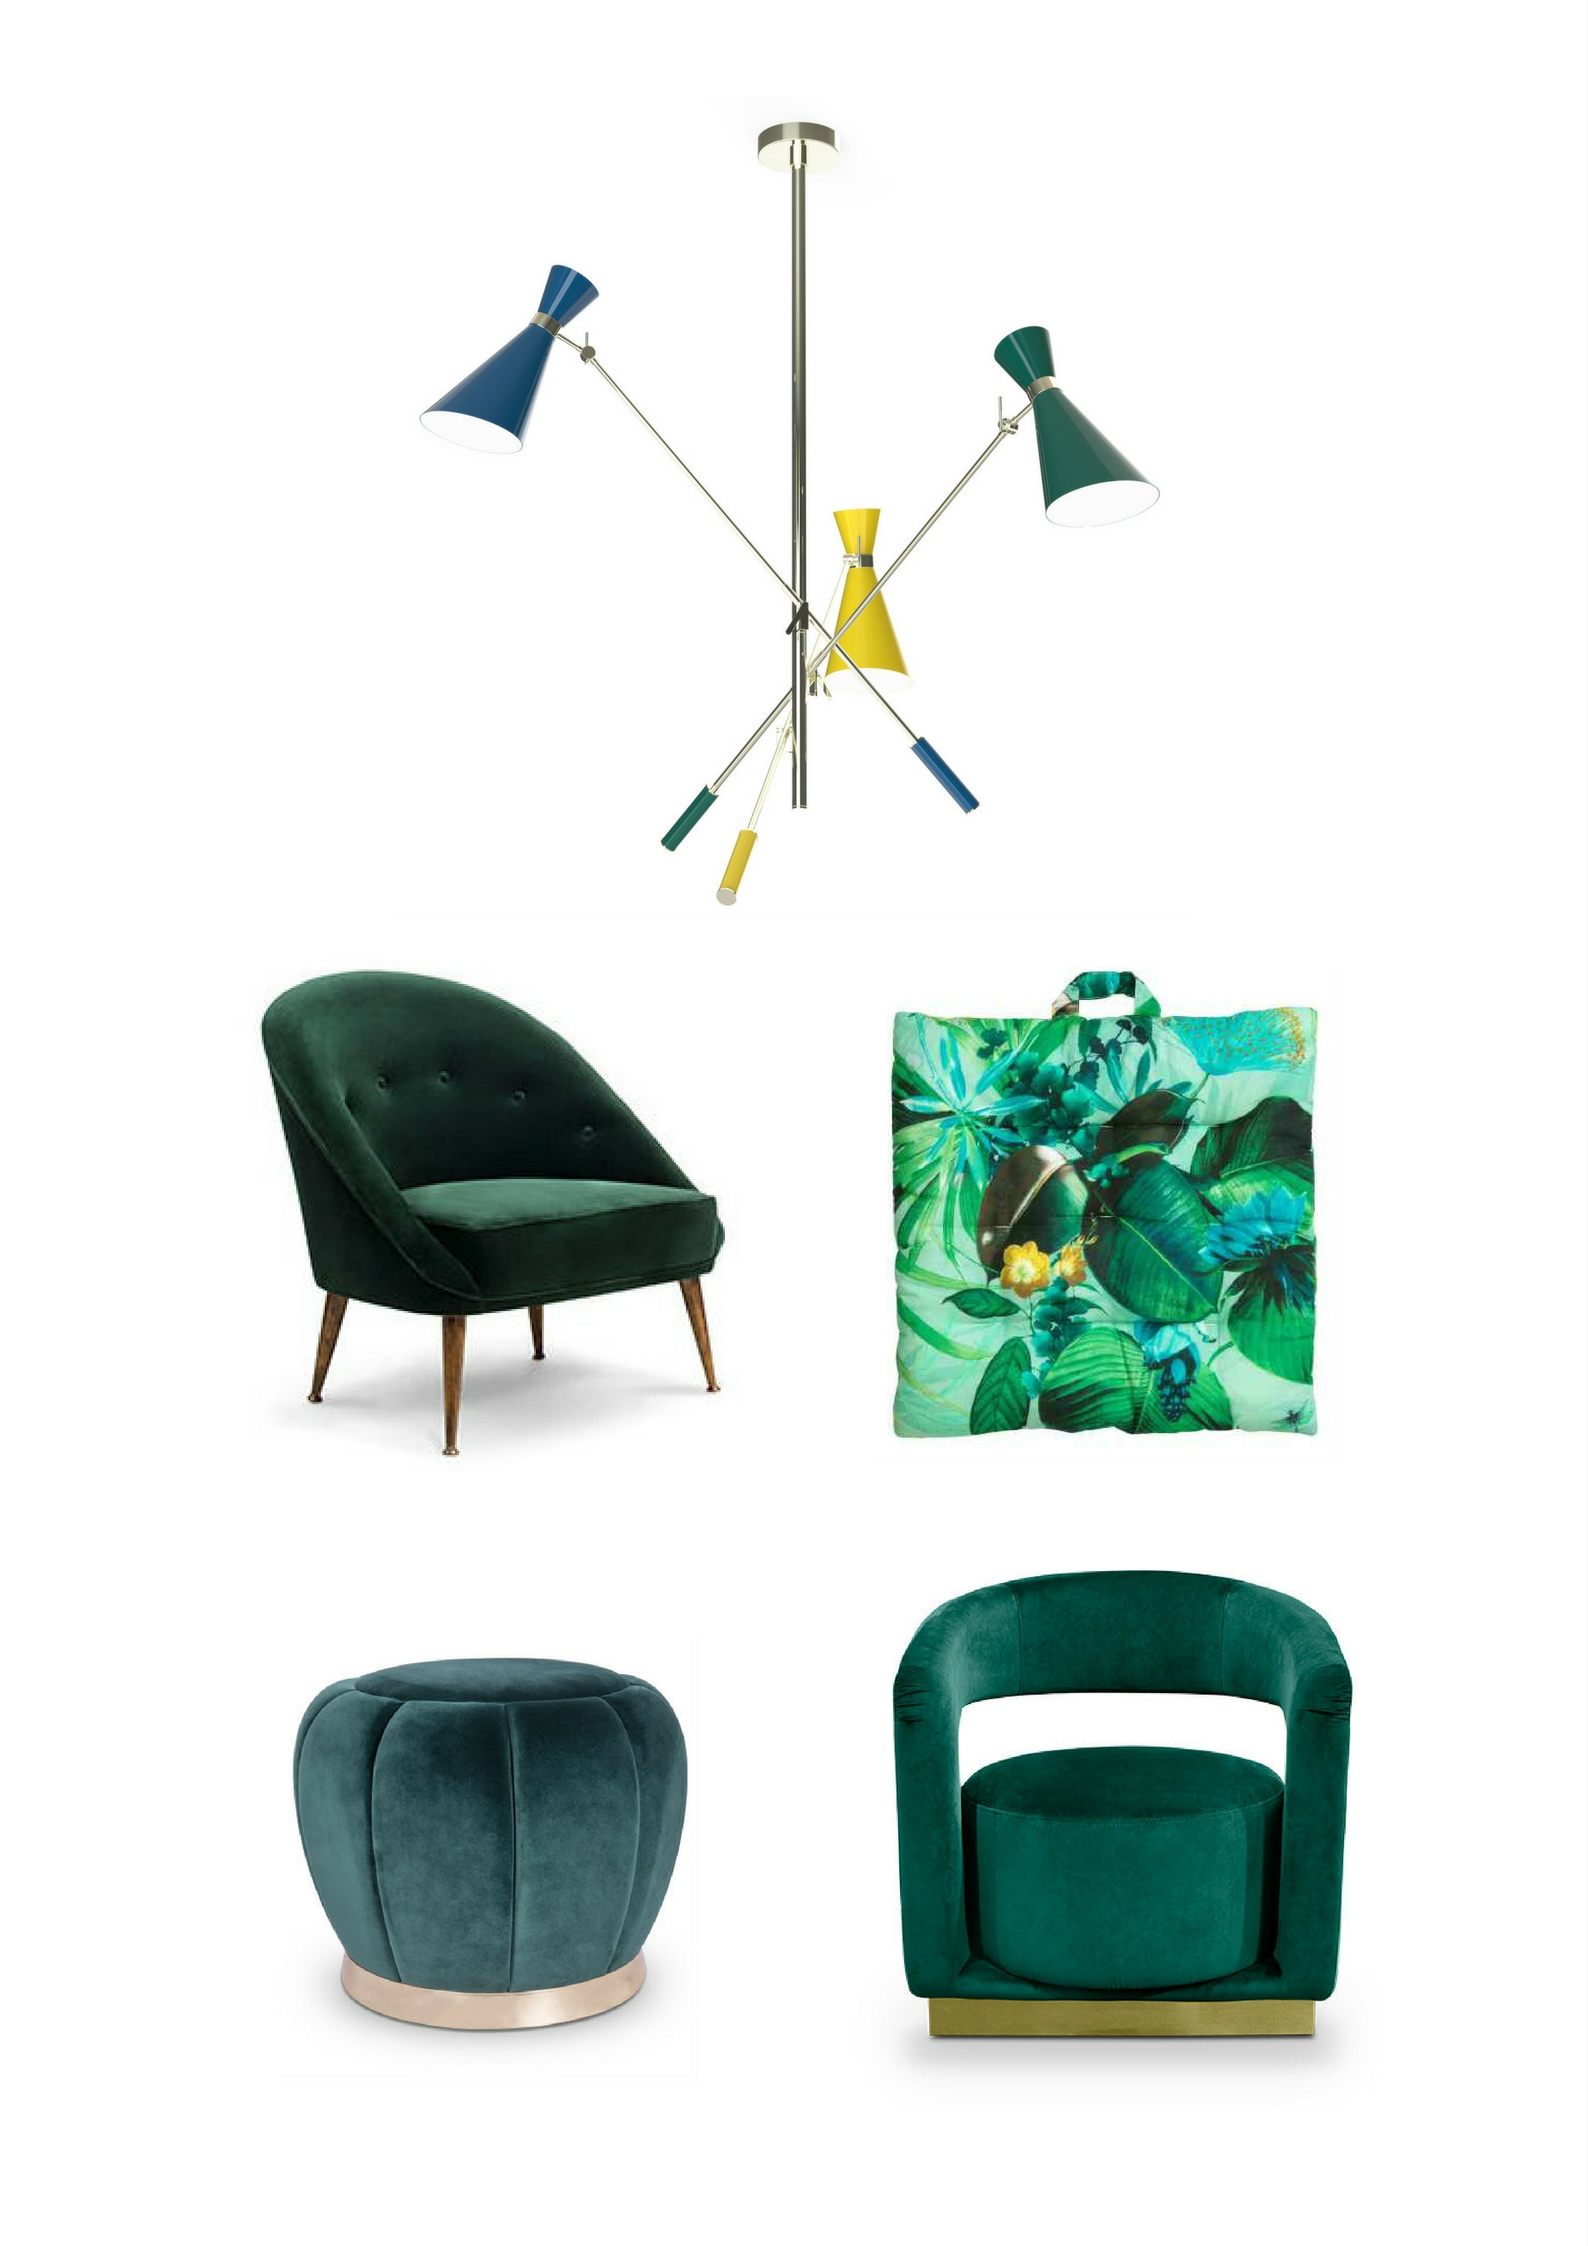 Mood Board Why Emerald Green is The Perfect Color for Your Summer 7 (2) emerald green Mood Board: Why Emerald Green is The Perfect Color for Your Summer Mood Board Why Emerald Green is The Perfect Color for Your Summer 7 2